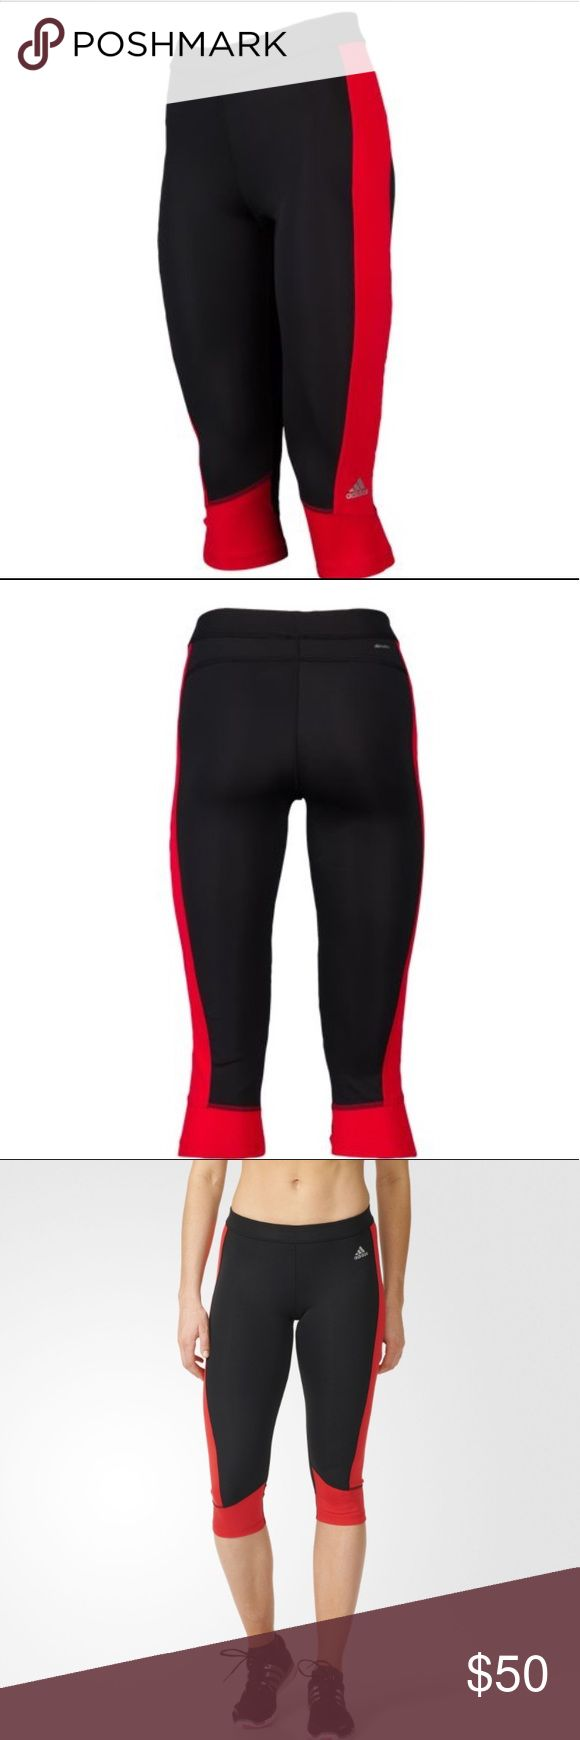 Adidas Capri Pants Adidas Capri Pants.  NWT.  Versitile enough to wear from class to training, for a sleek look and great fit.  Elastic waistband for a snug fit. UPF 50+ UV protection for outdoor training. 70% recycled polyester/19% polyester/11% spandex. adidas Pants Capris